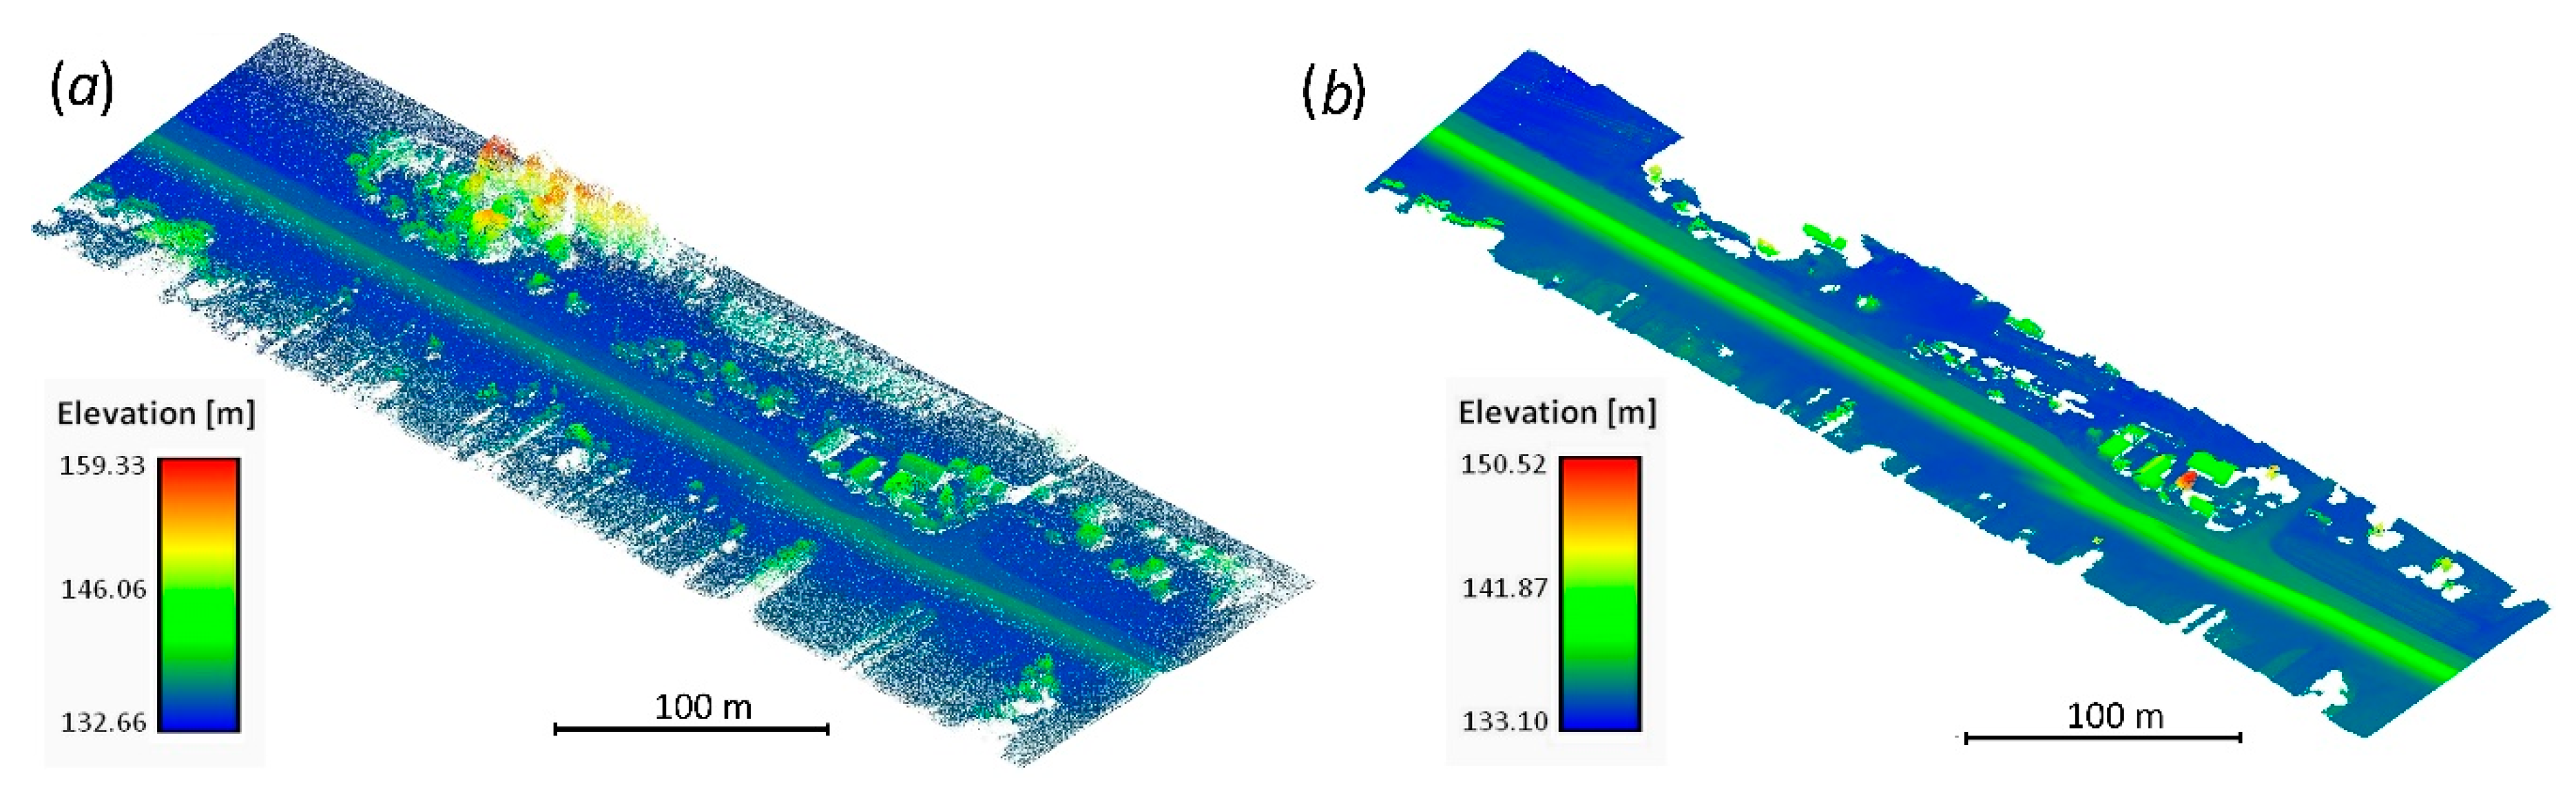 IJGI | Free Full-Text | Accuracy Assessment of Point Clouds from